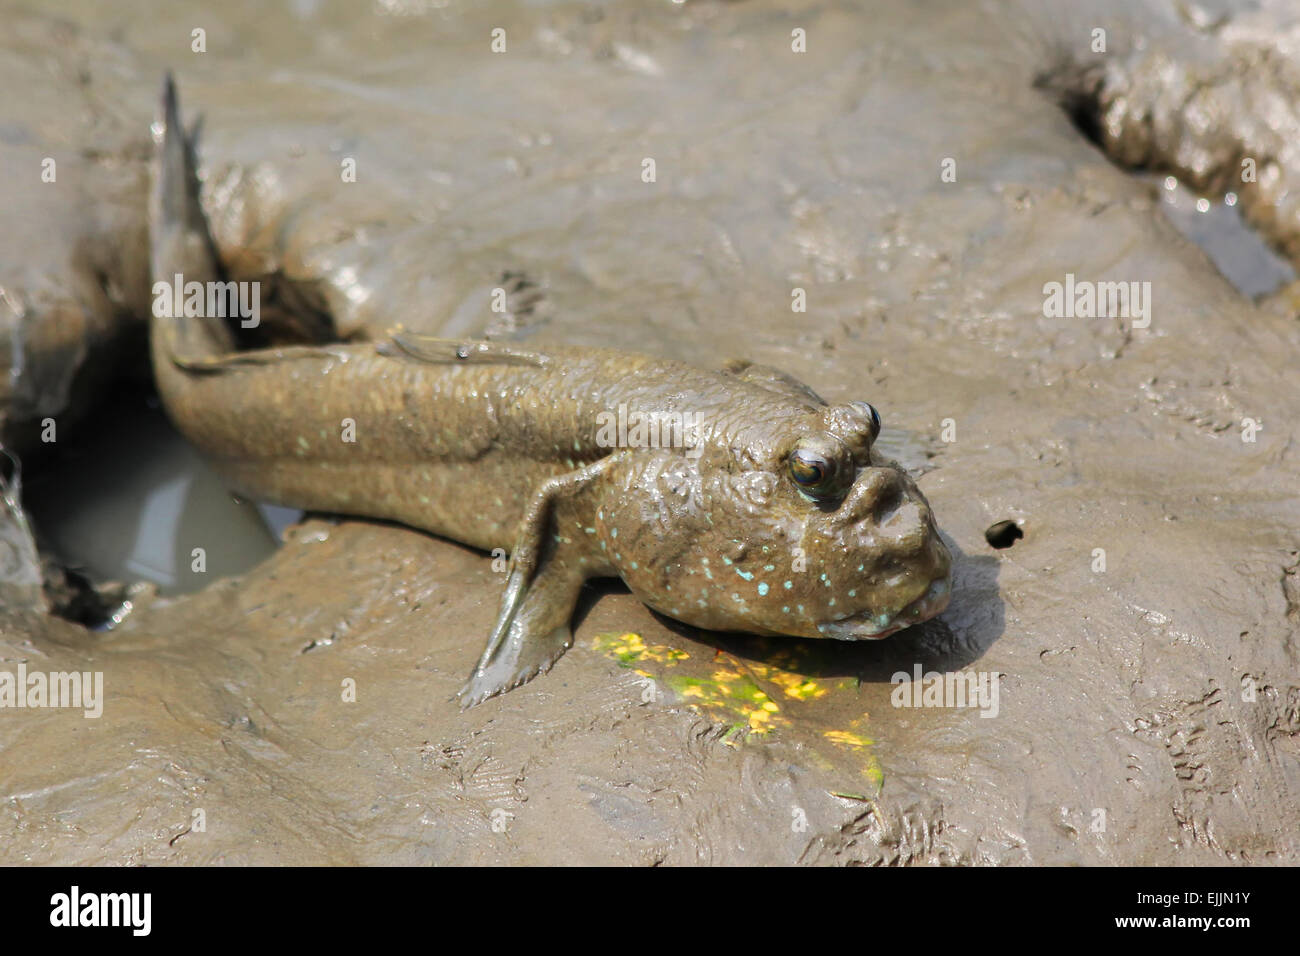 Mudskipper relaxing on the ground - Stock Image